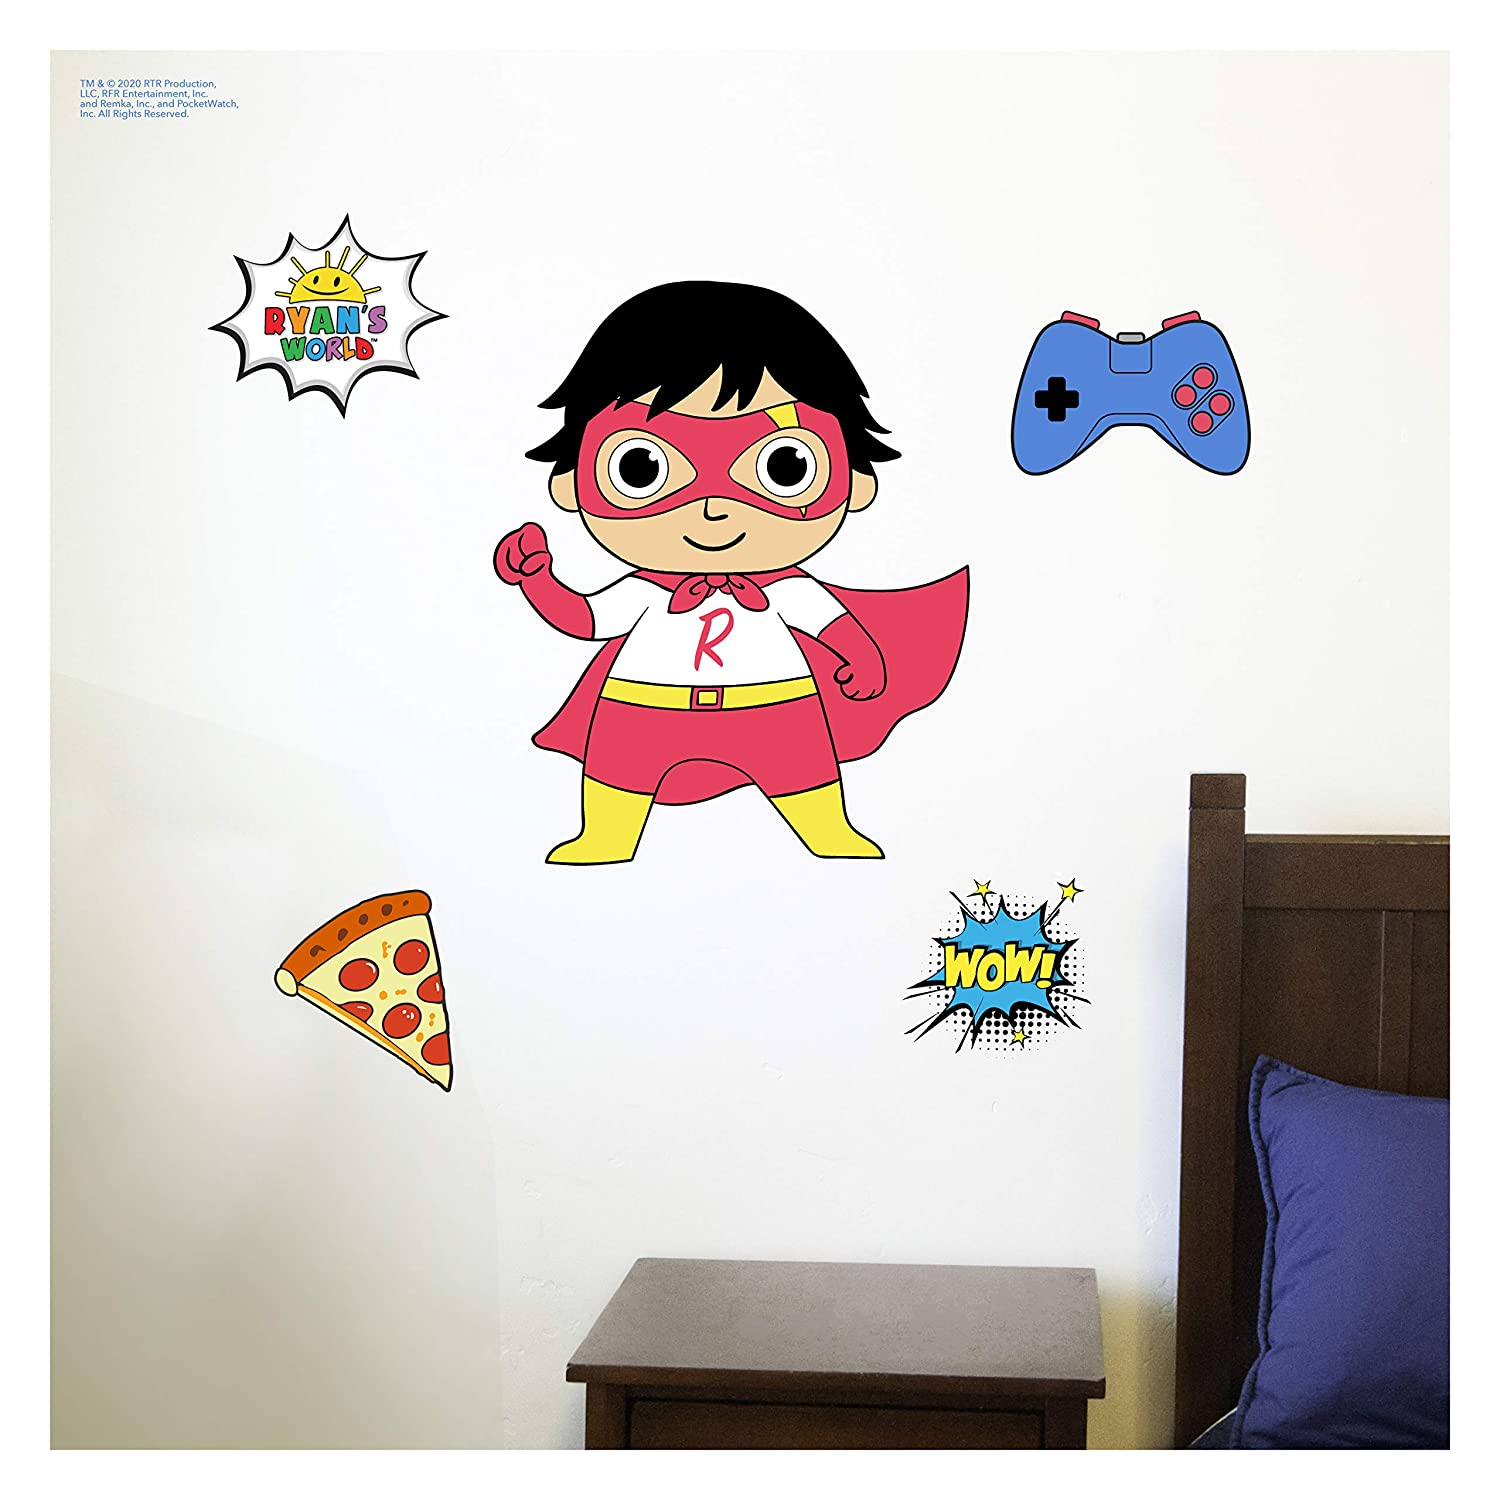 Ryan's World Wall Decals - The Red Titan Wall Stickers with 3D Augmented Reality Interaction - Ryans World Bedroom Decor